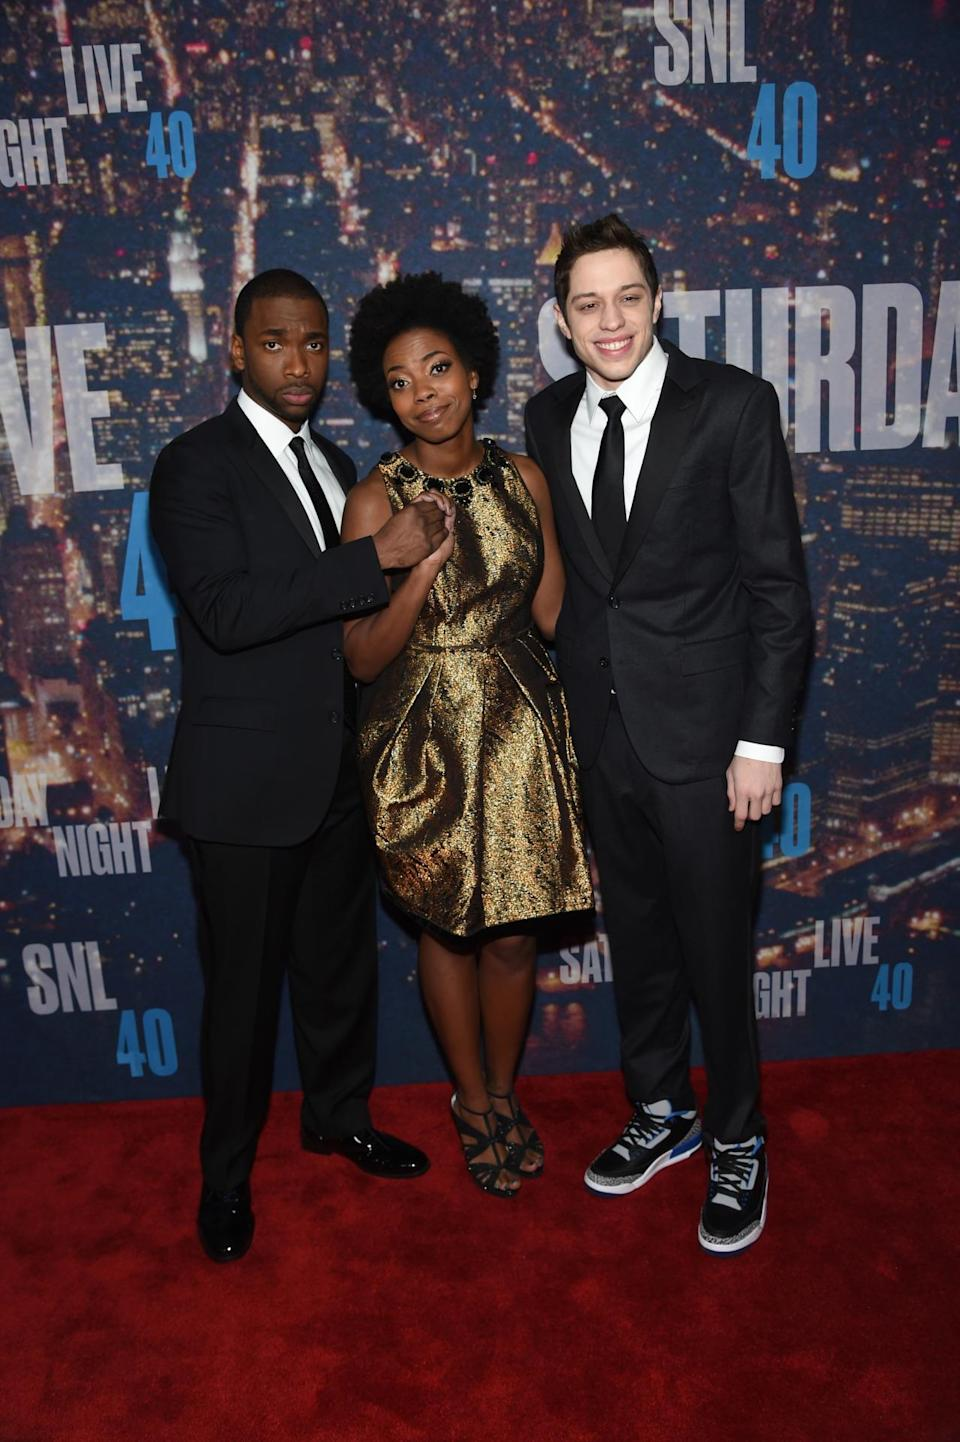 Current castmembers Jay Pharoah, Sasheer Zamata, and Pete Davidson make the step-and-repeat silly. While the boys look sharp in the suits, Zamata's gold dress is fitting for the celebratory atmosphere.